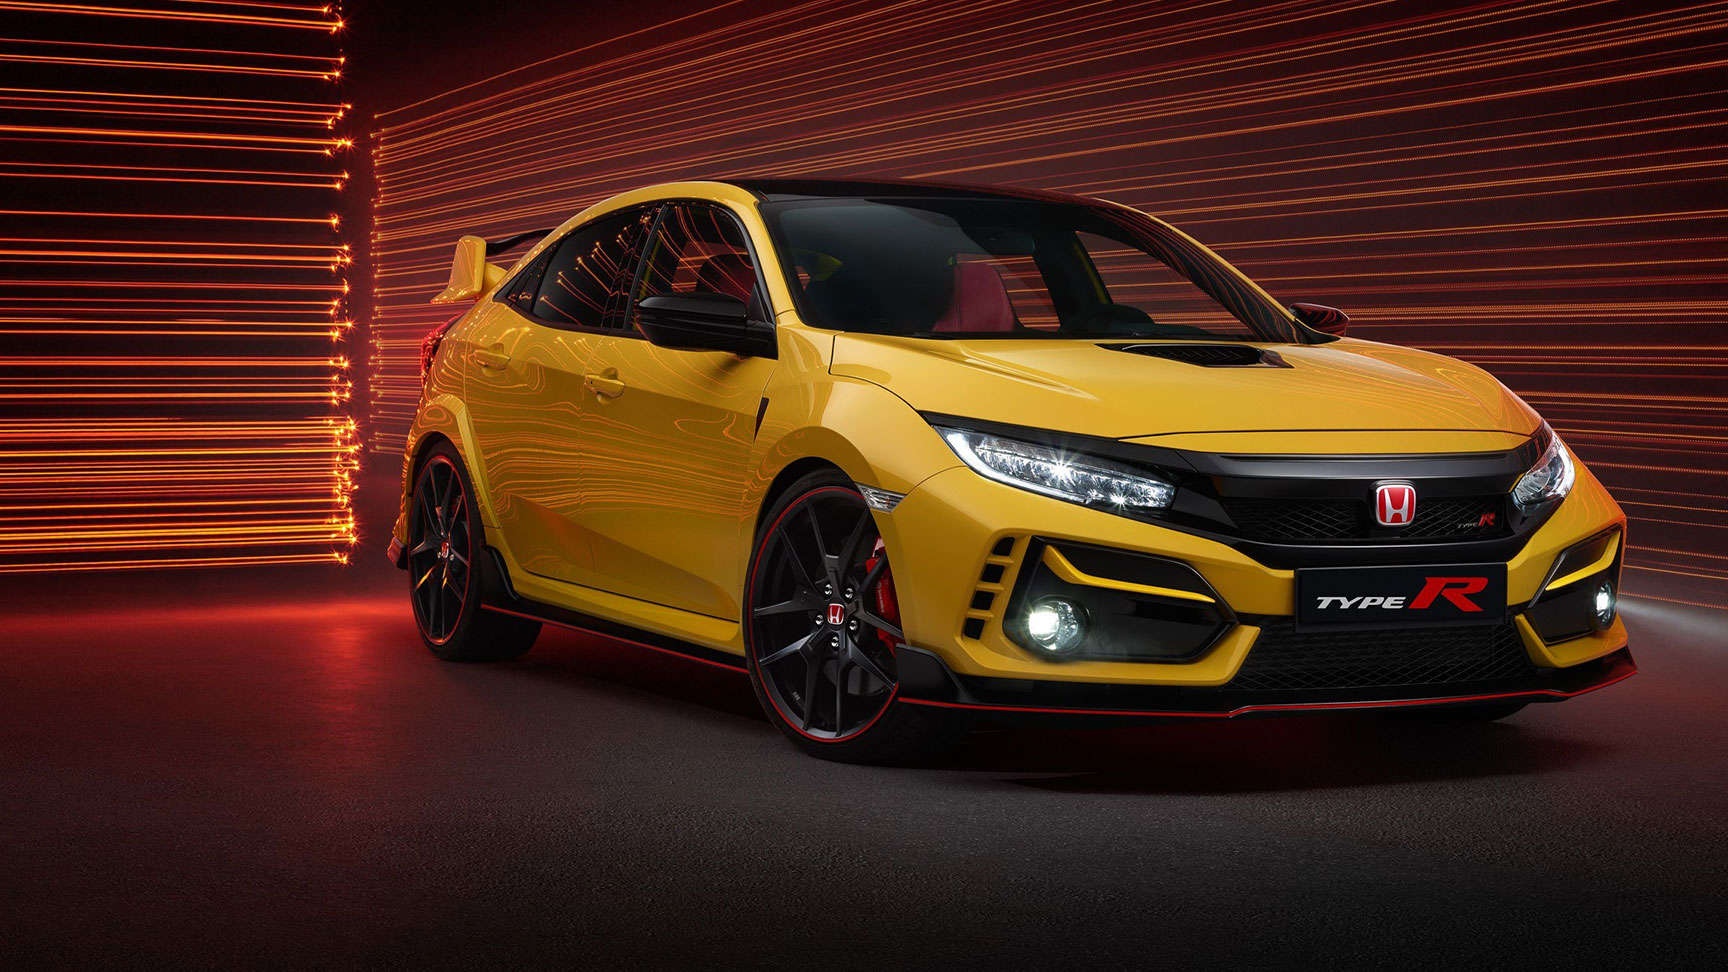 Honda Civic Type R - Overview